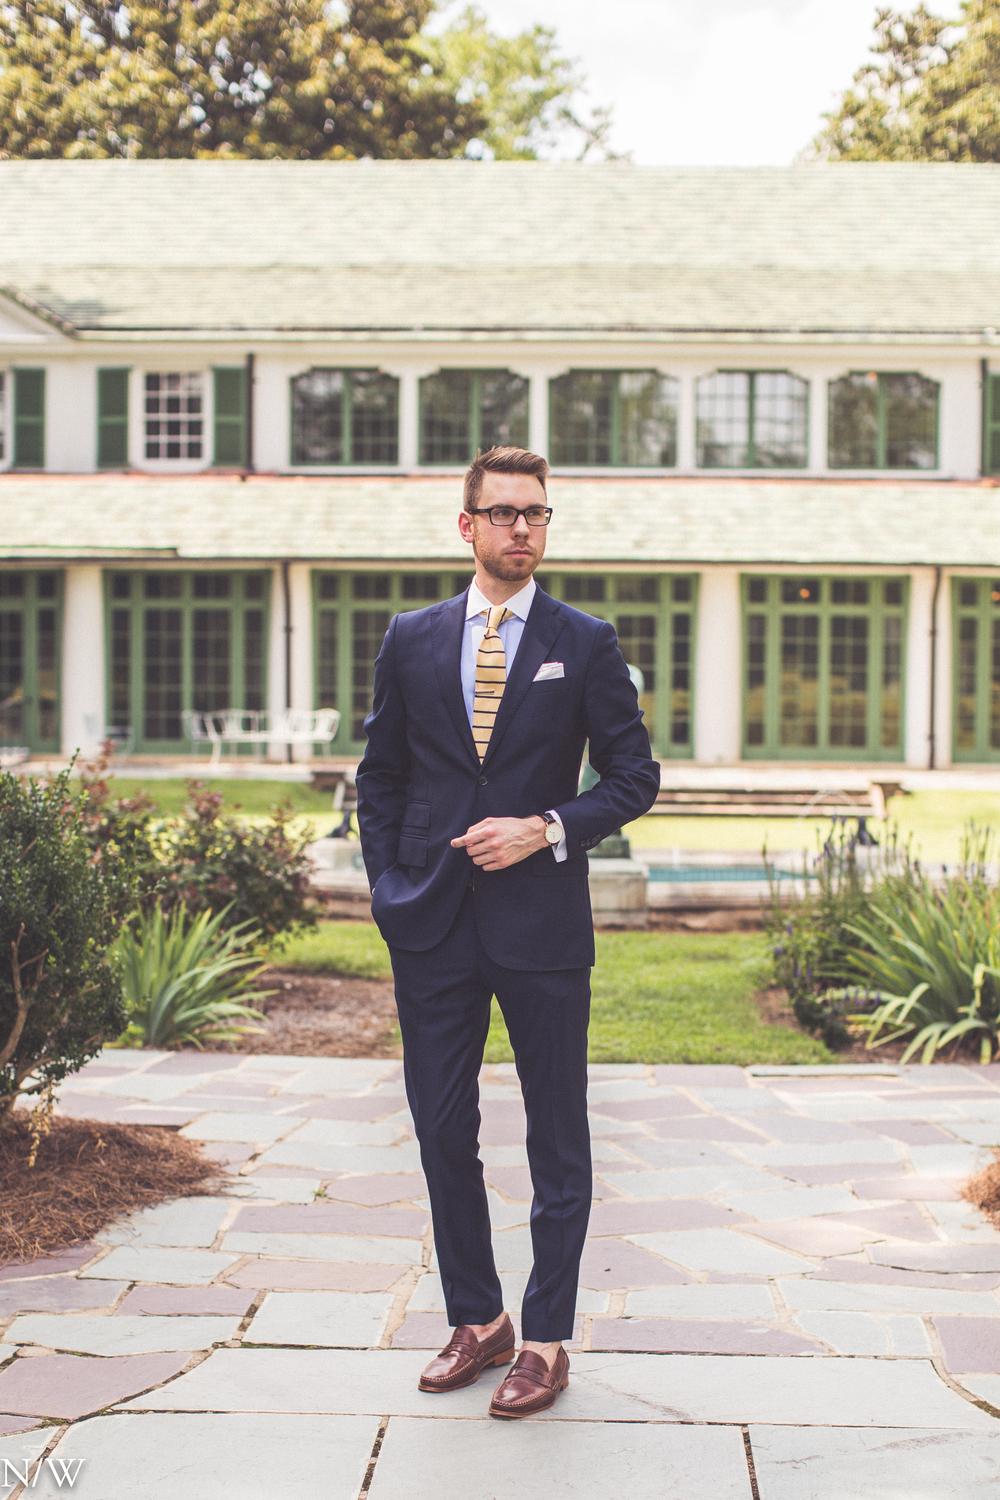 Suit: J. Lindeburg, Shirt: Ledbury, Shoes: Johnston & Murphy, Tie: Bows-n-ties.com, Glasses: Burberry.